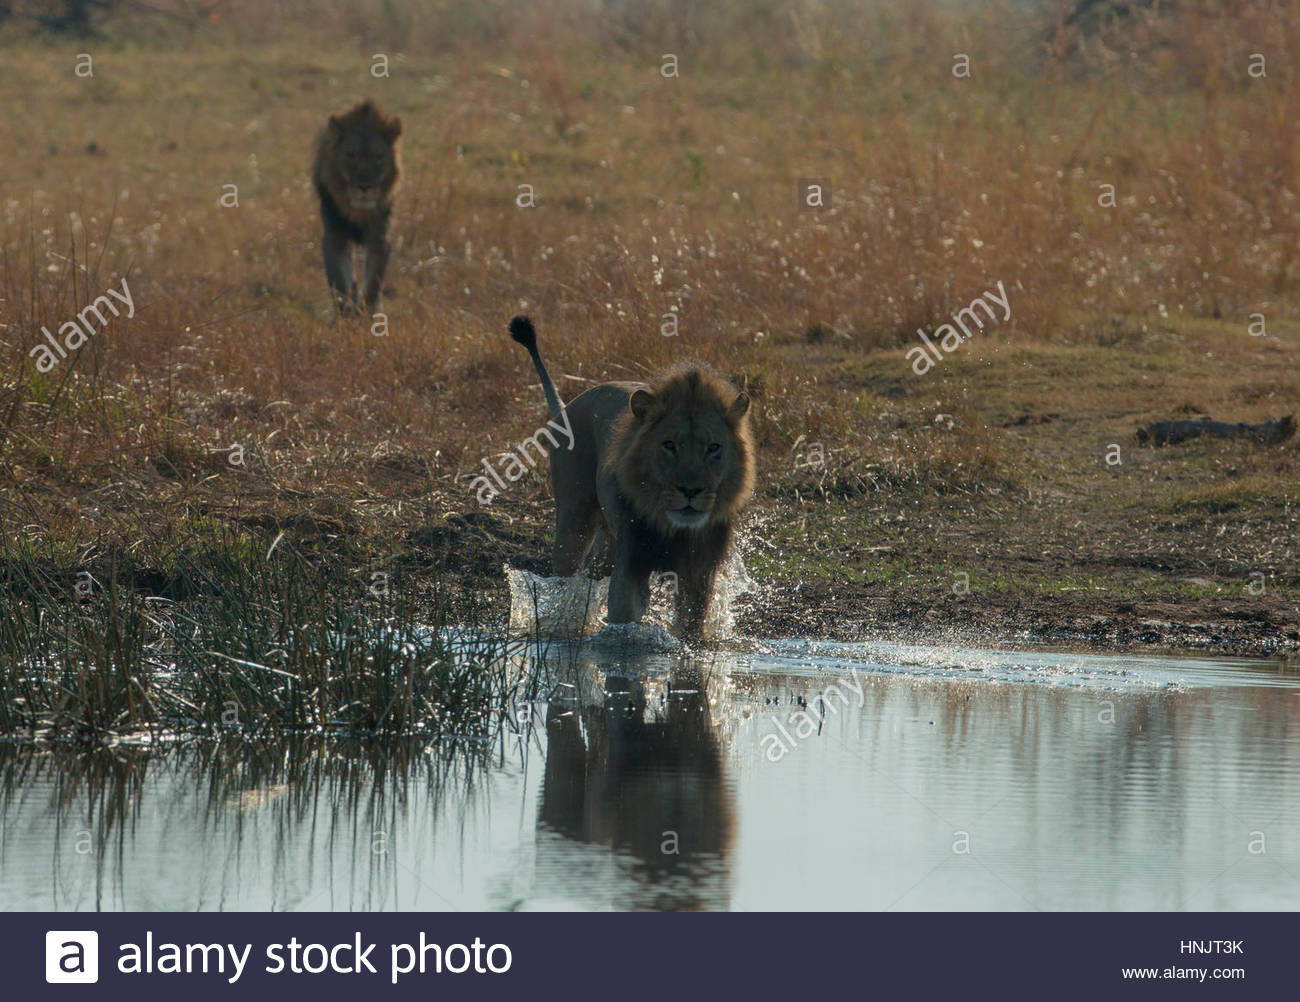 A male lion, Panthera leo, crosses a spillway. - Stock Image